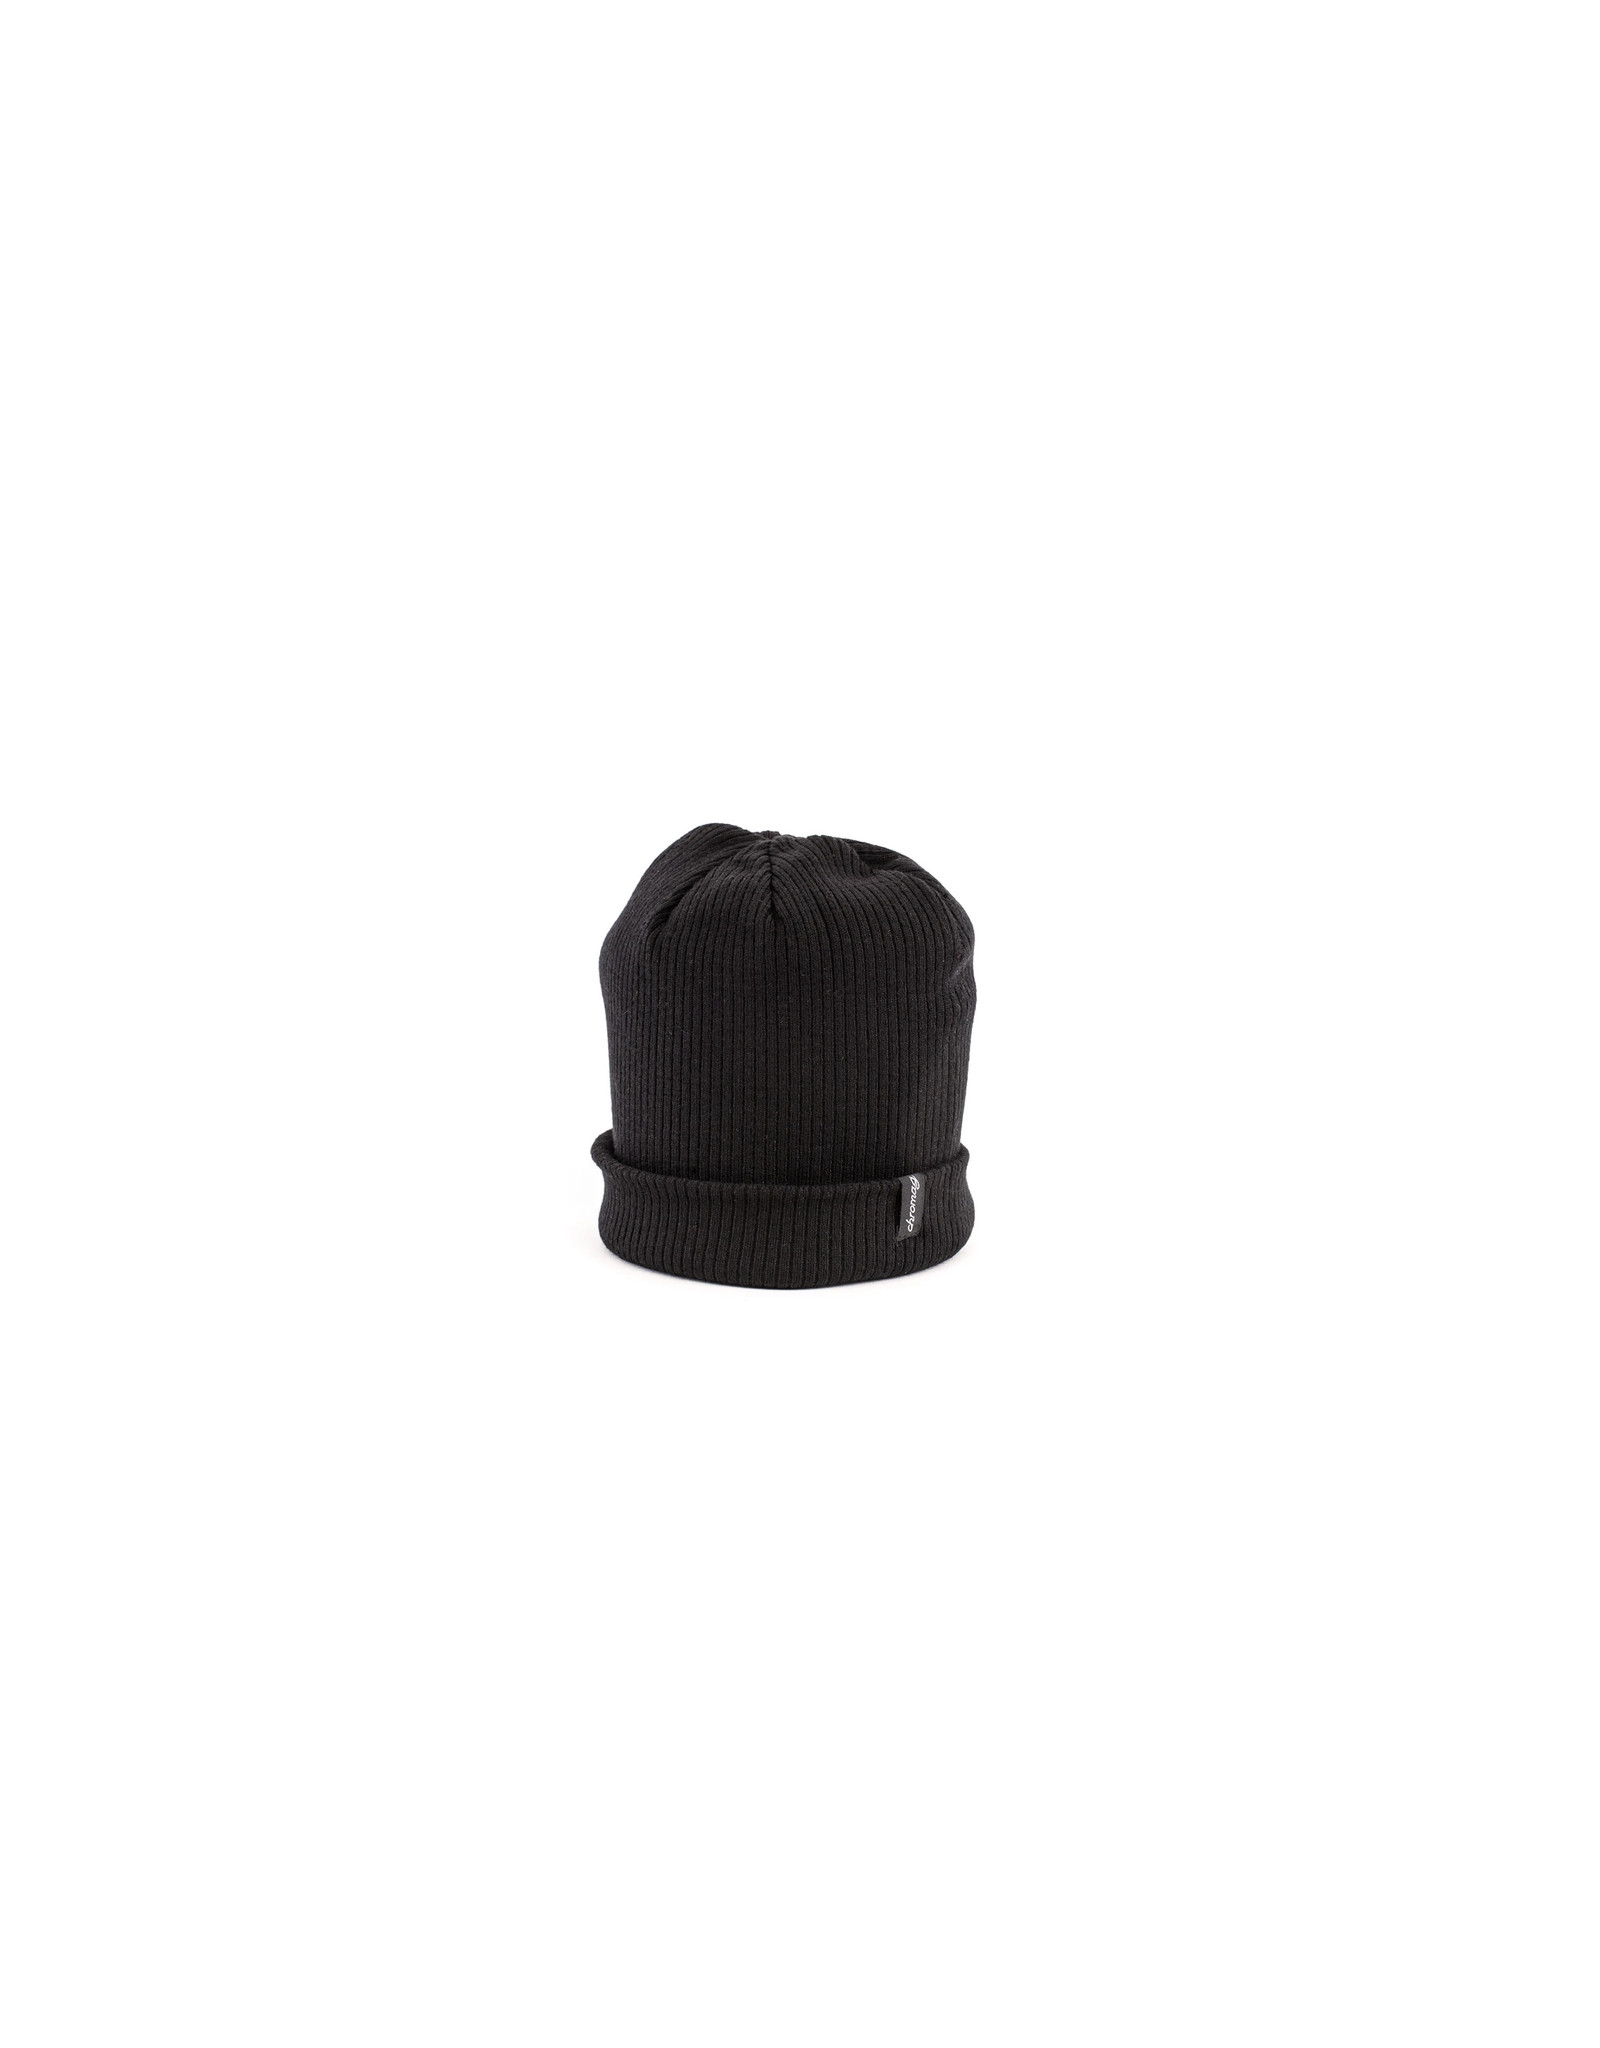 Chromag Tuque Chromag Noir